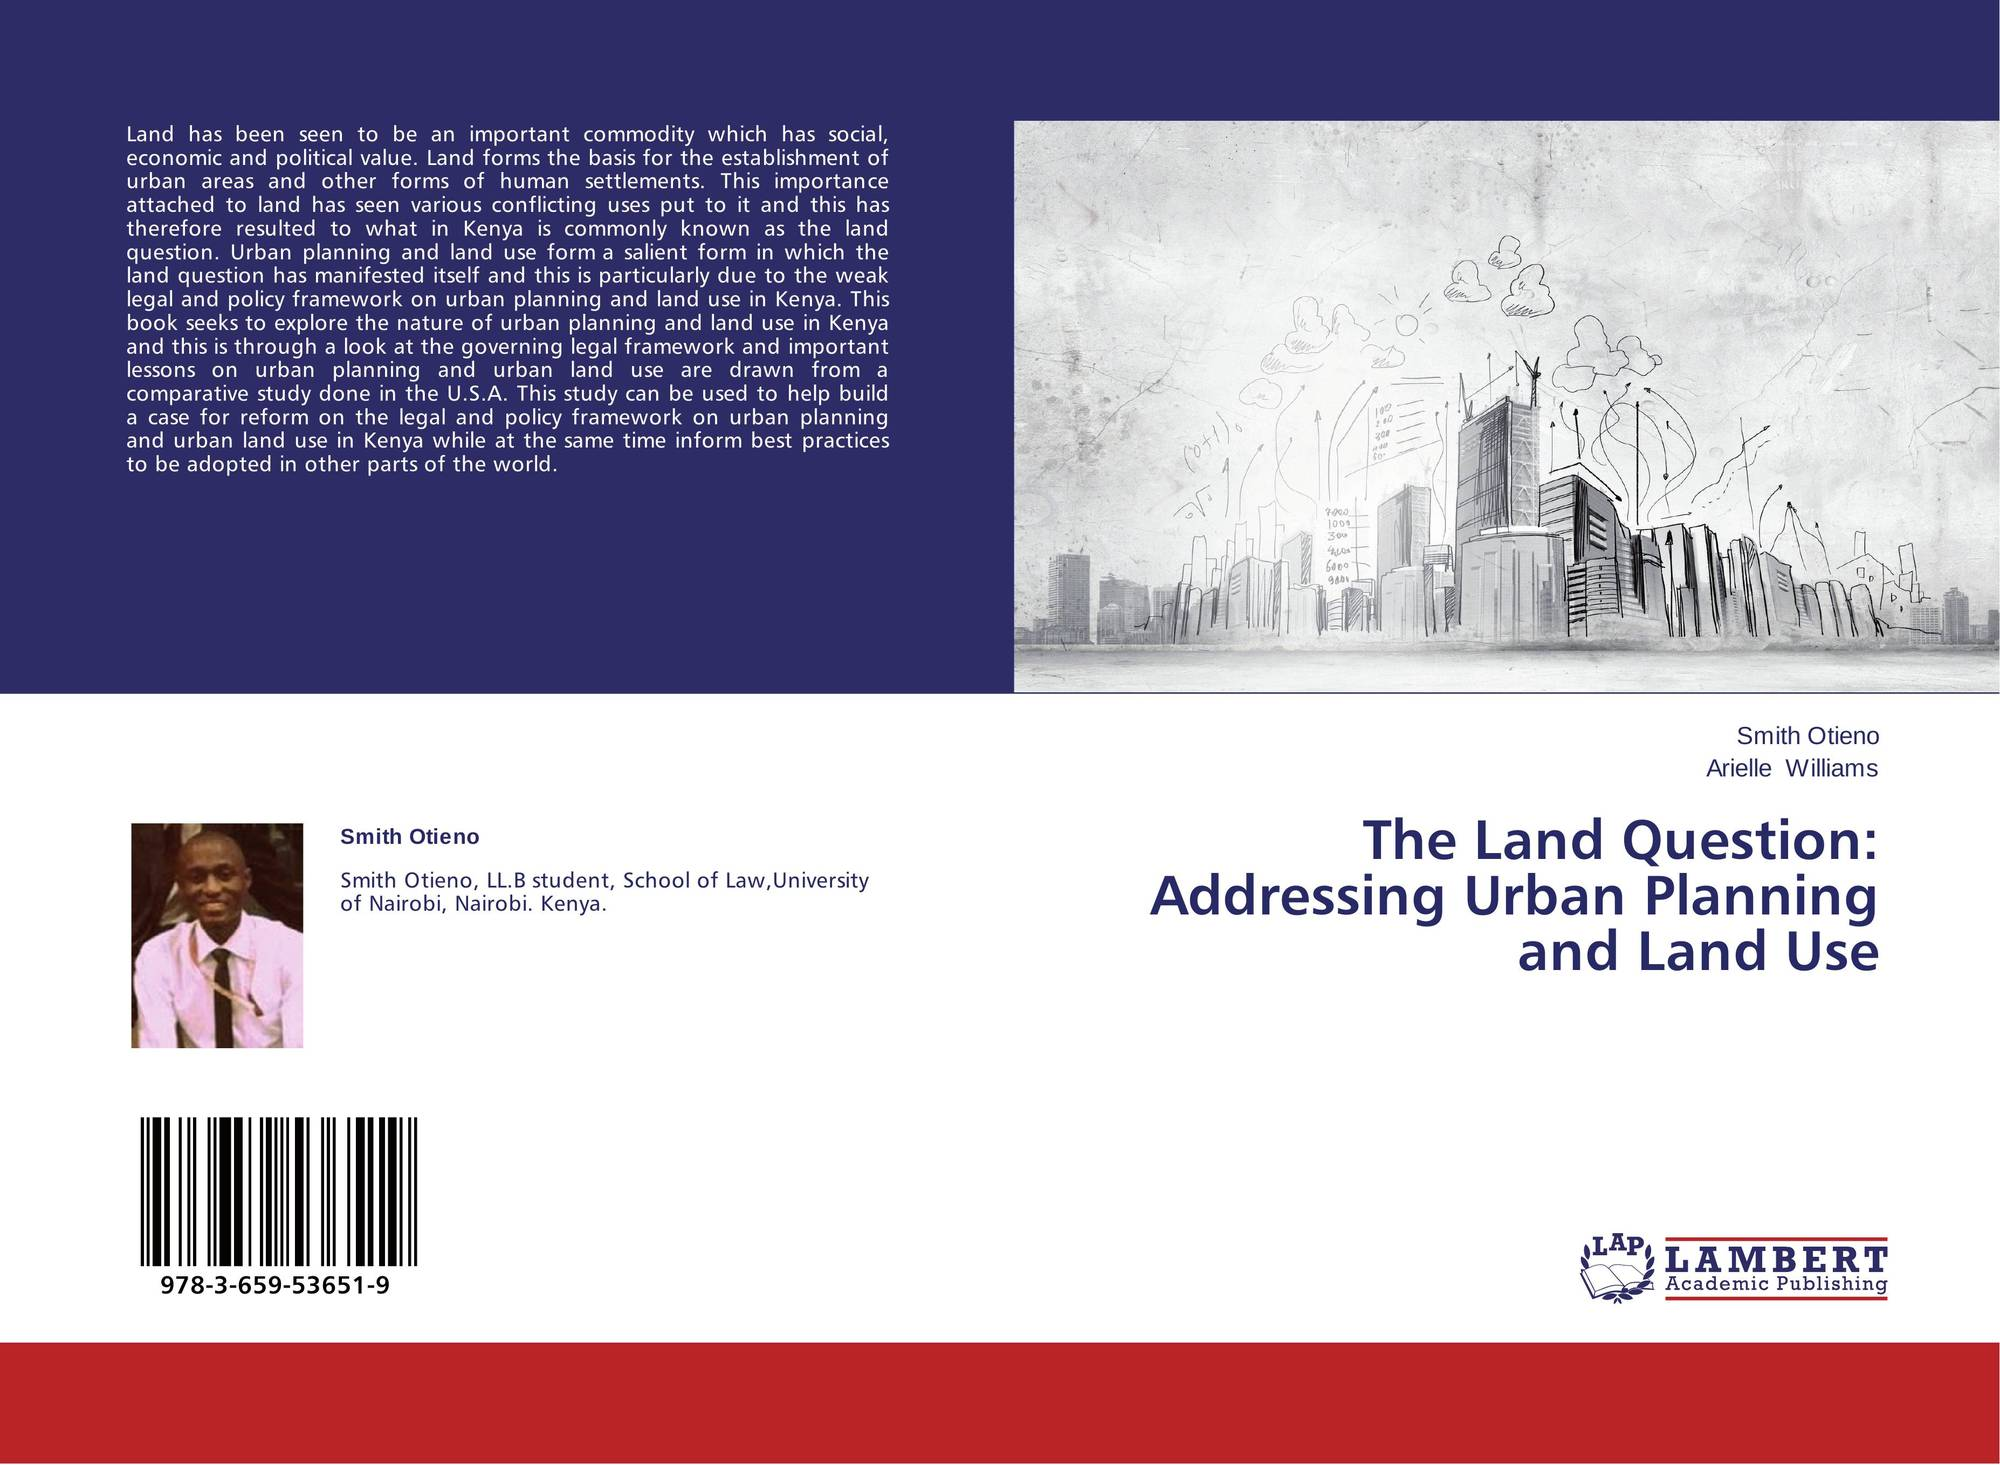 an informative paper explaining the factors and fallacies of urban consolidation The online writing lab (owl) at purdue university houses writing resources and instructional material, and we provide these as a free service of the writing lab at purdue.